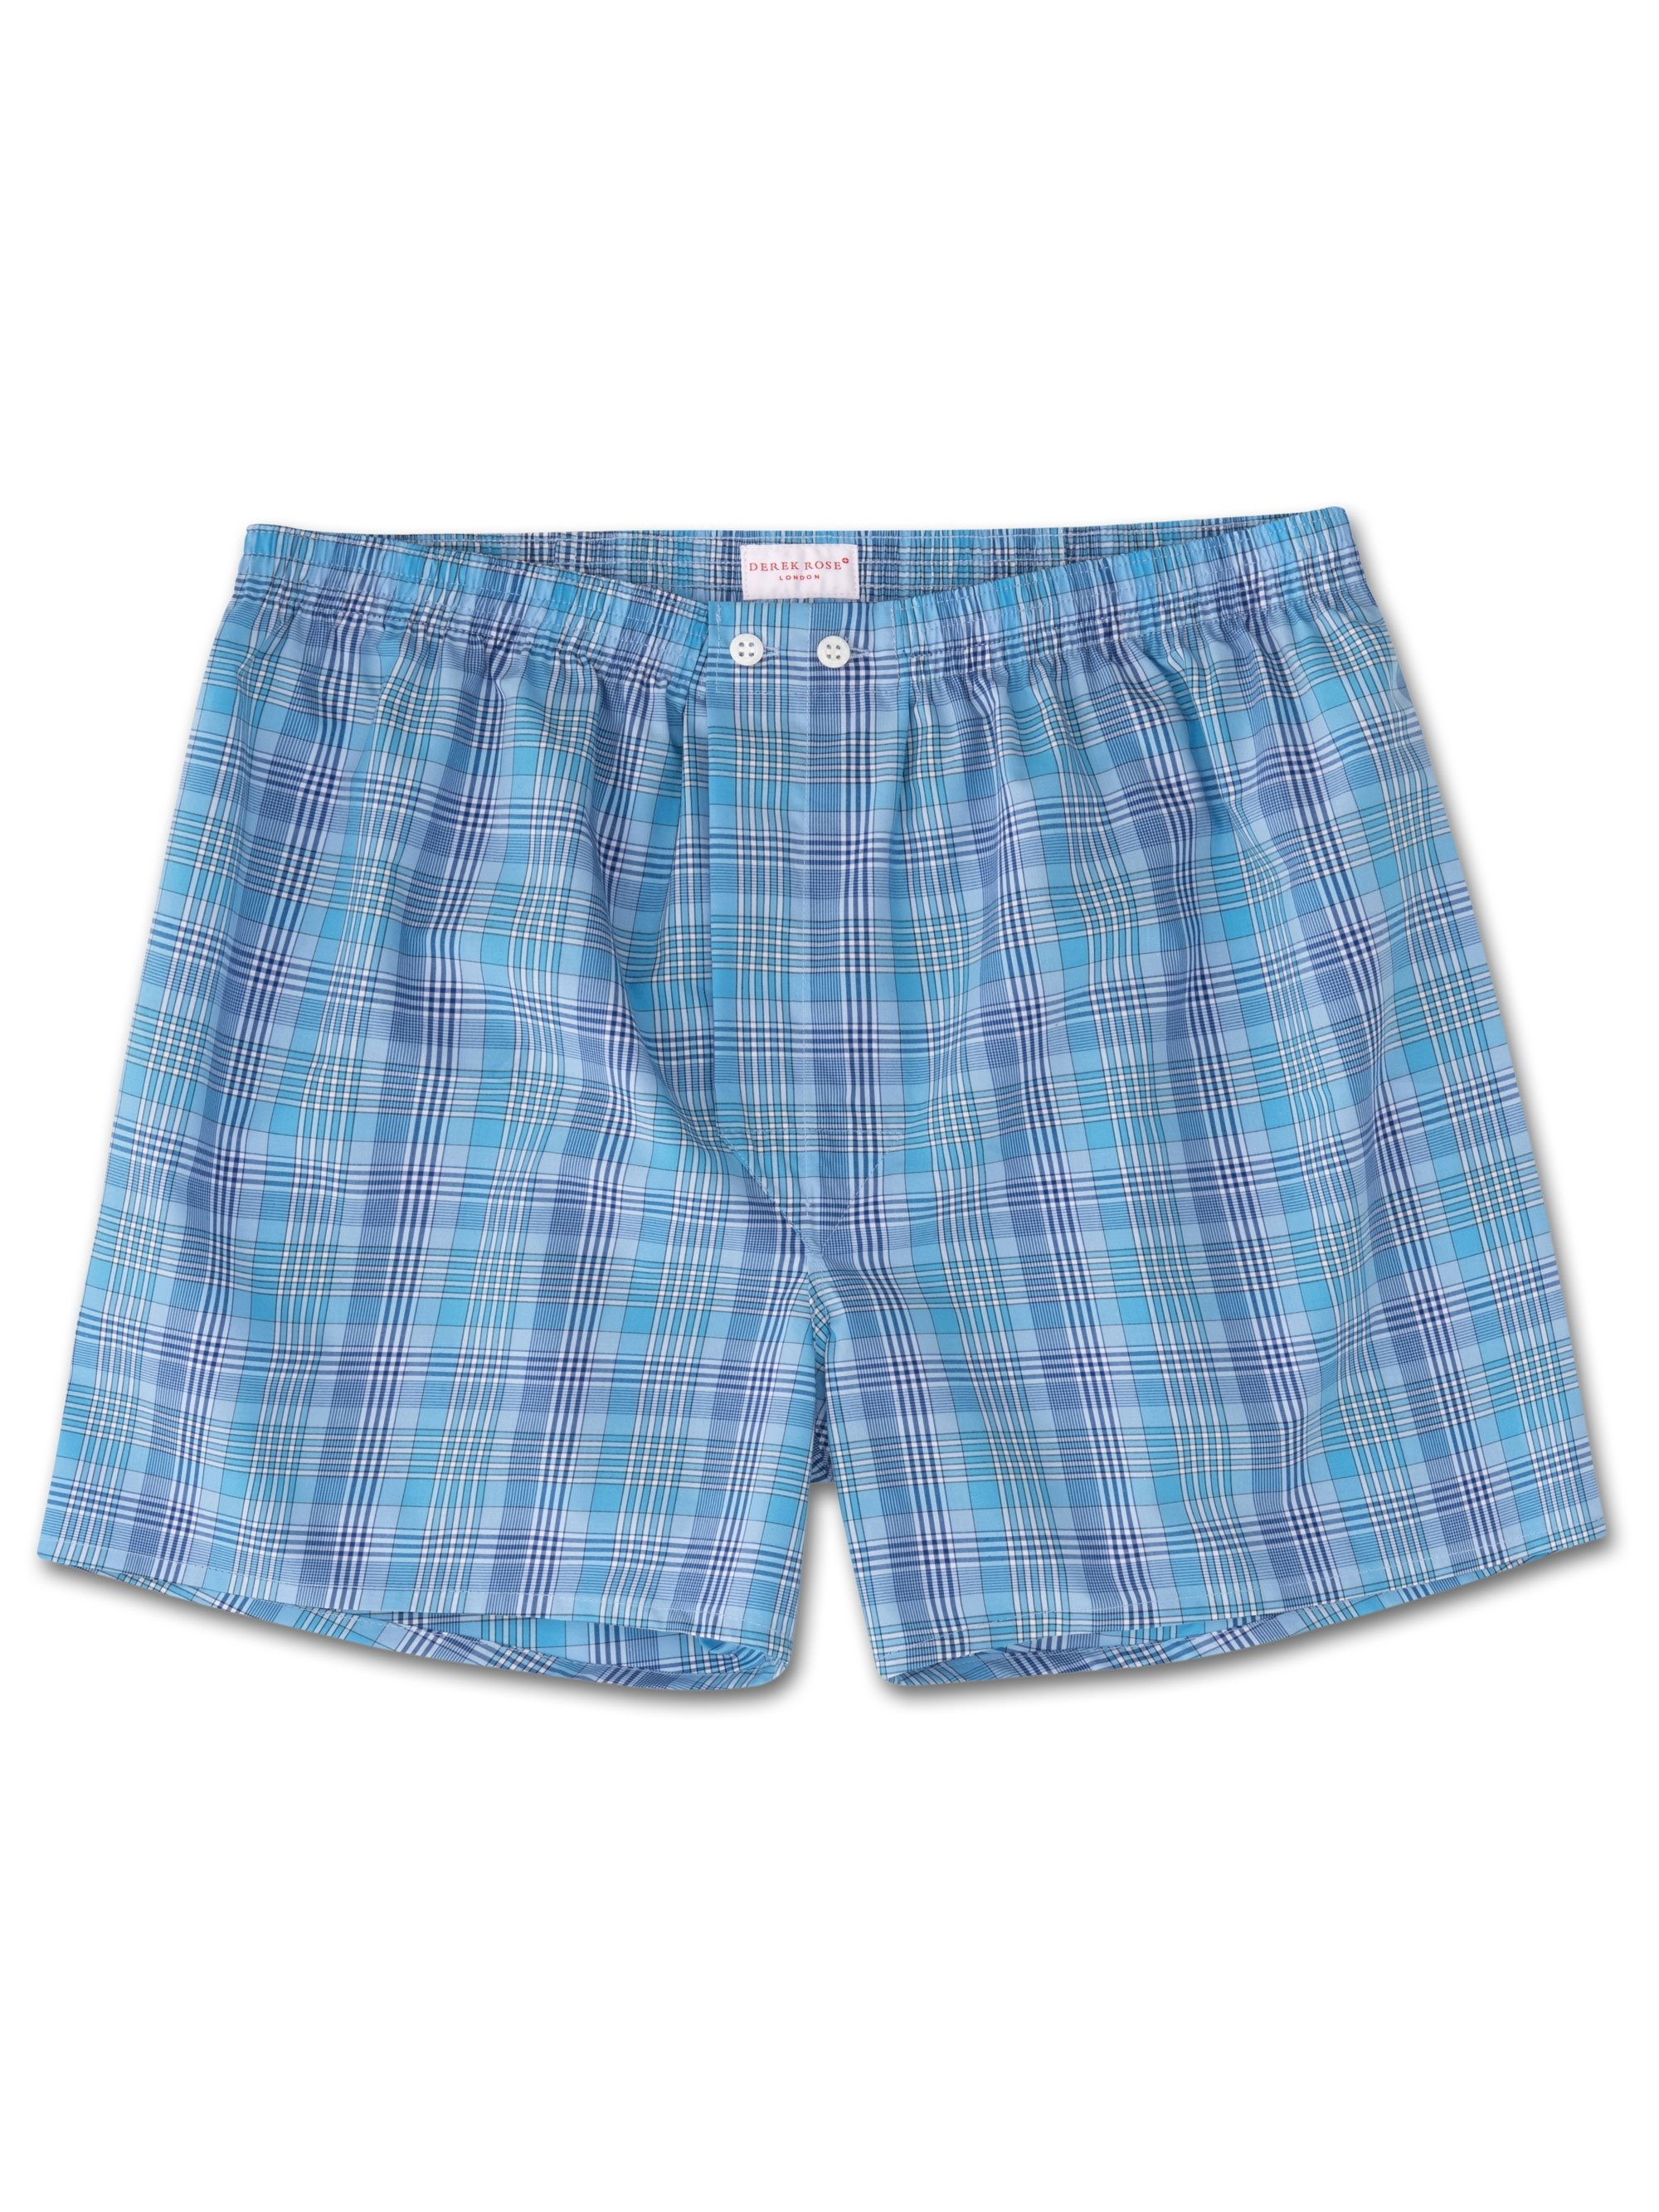 Men's Classic Fit Boxer Shorts Barker 20 Cotton Check Blue